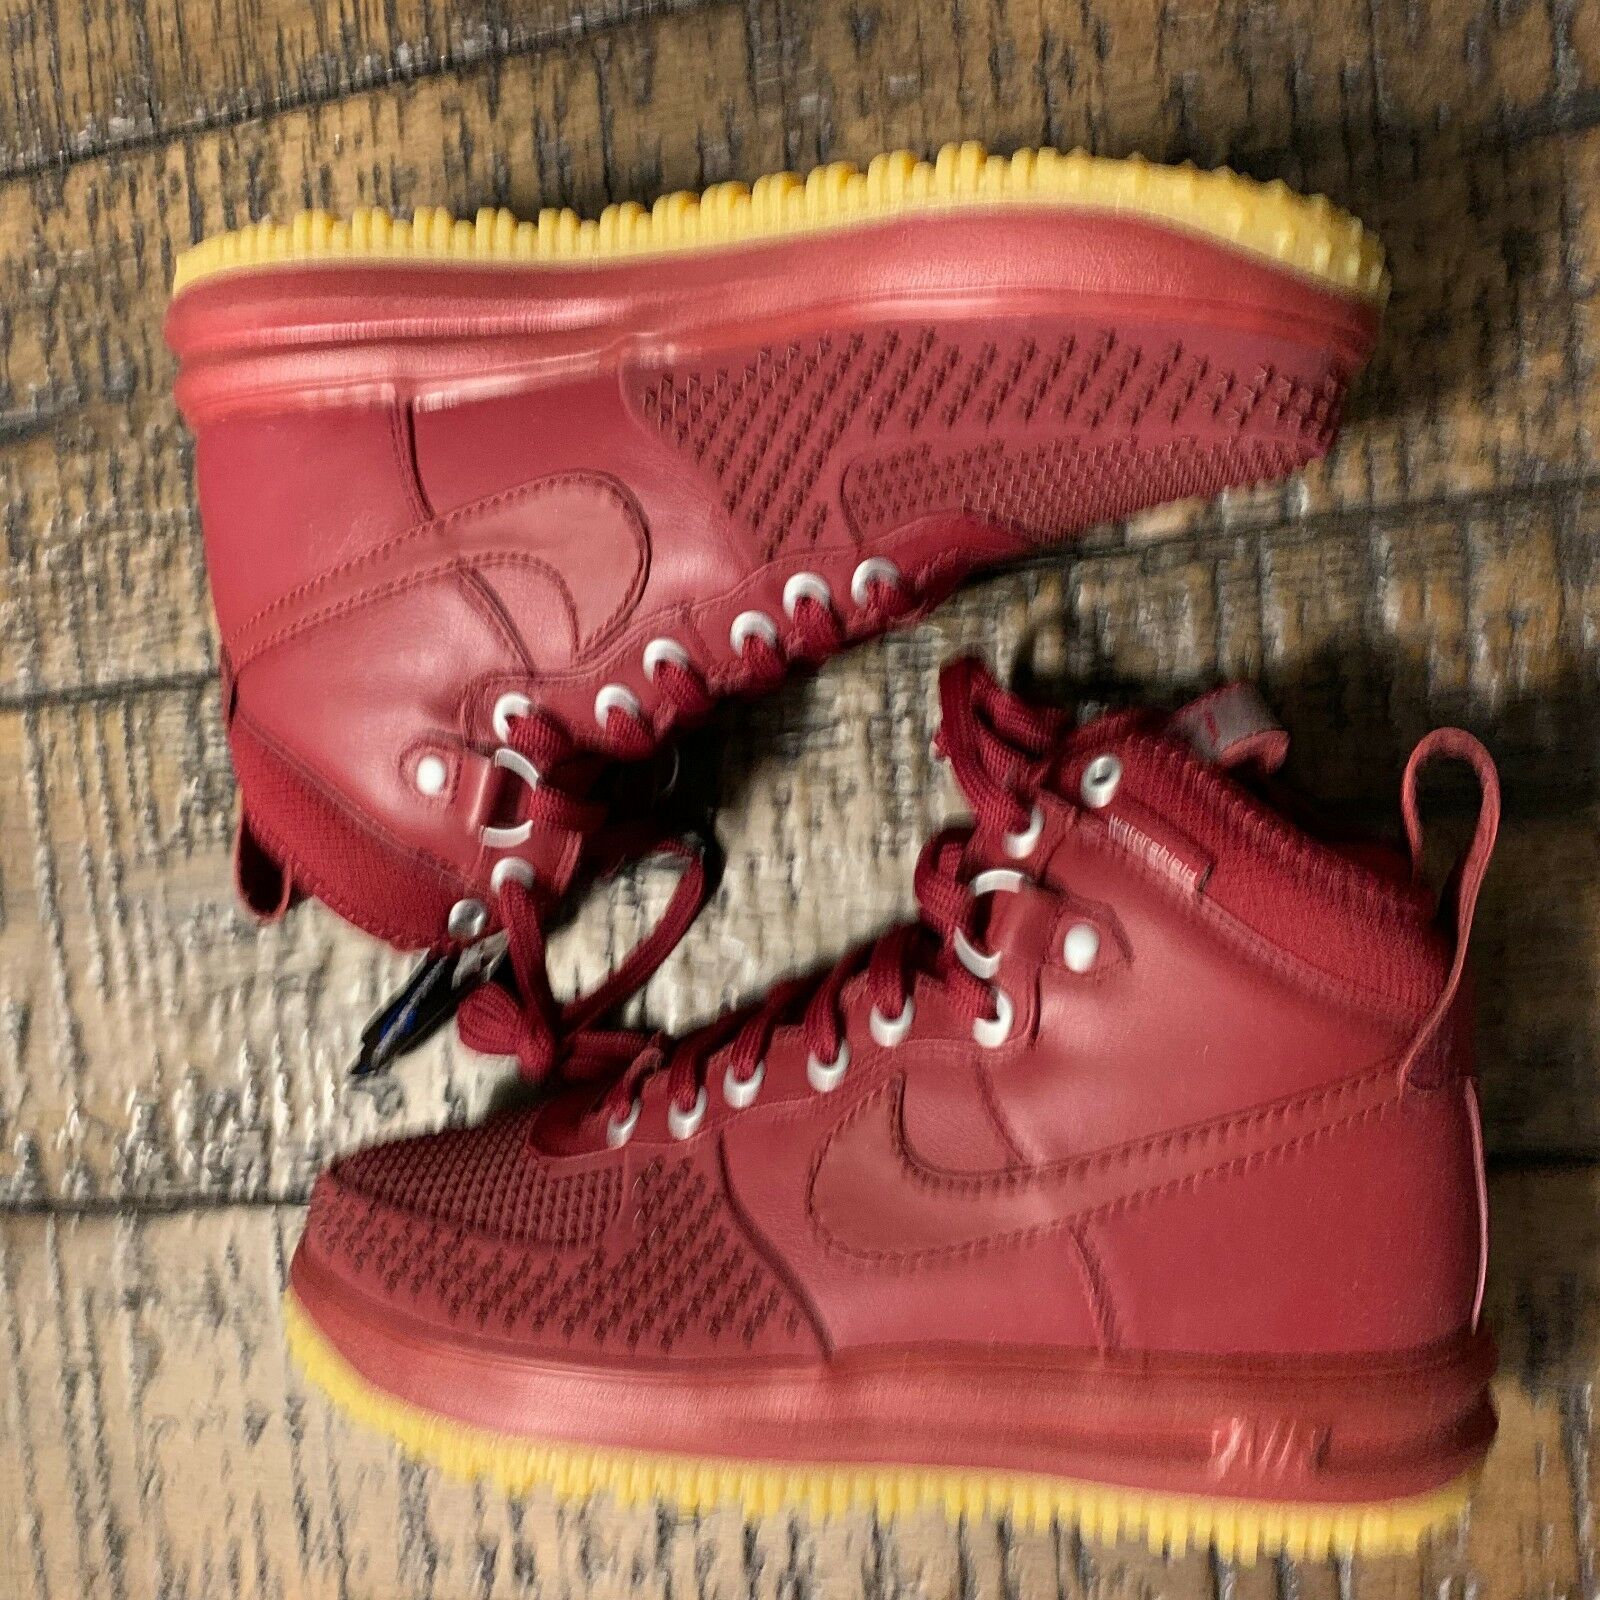 Rare Nike Lunar Force 1 Duckboot 'Team Red&Gum' Size 7.5  805899 600 NO BOX TOP